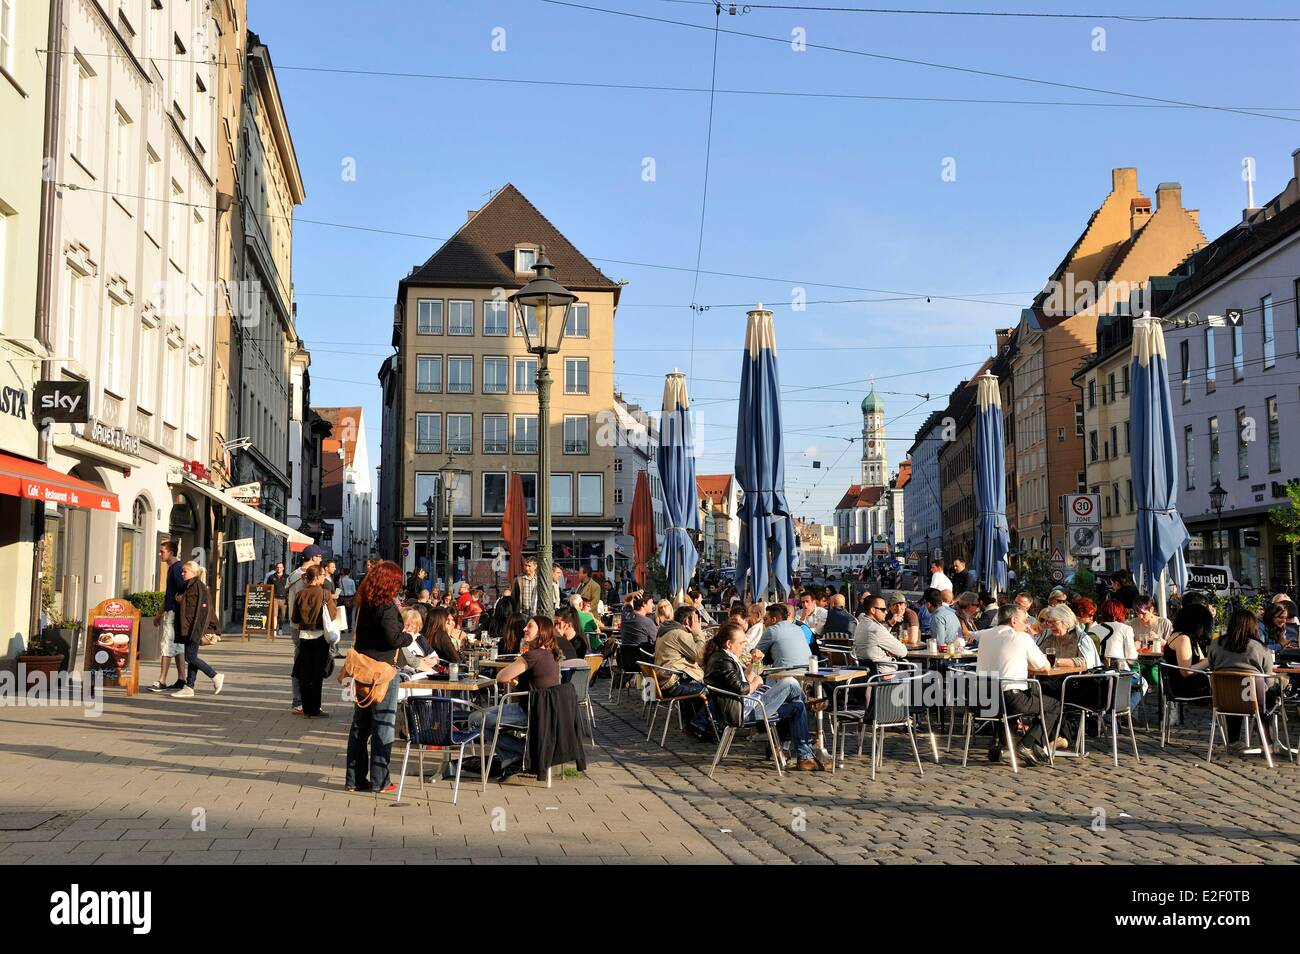 deutschland bayern augsburg maximilianstra e stockfoto bild 70400747 alamy. Black Bedroom Furniture Sets. Home Design Ideas